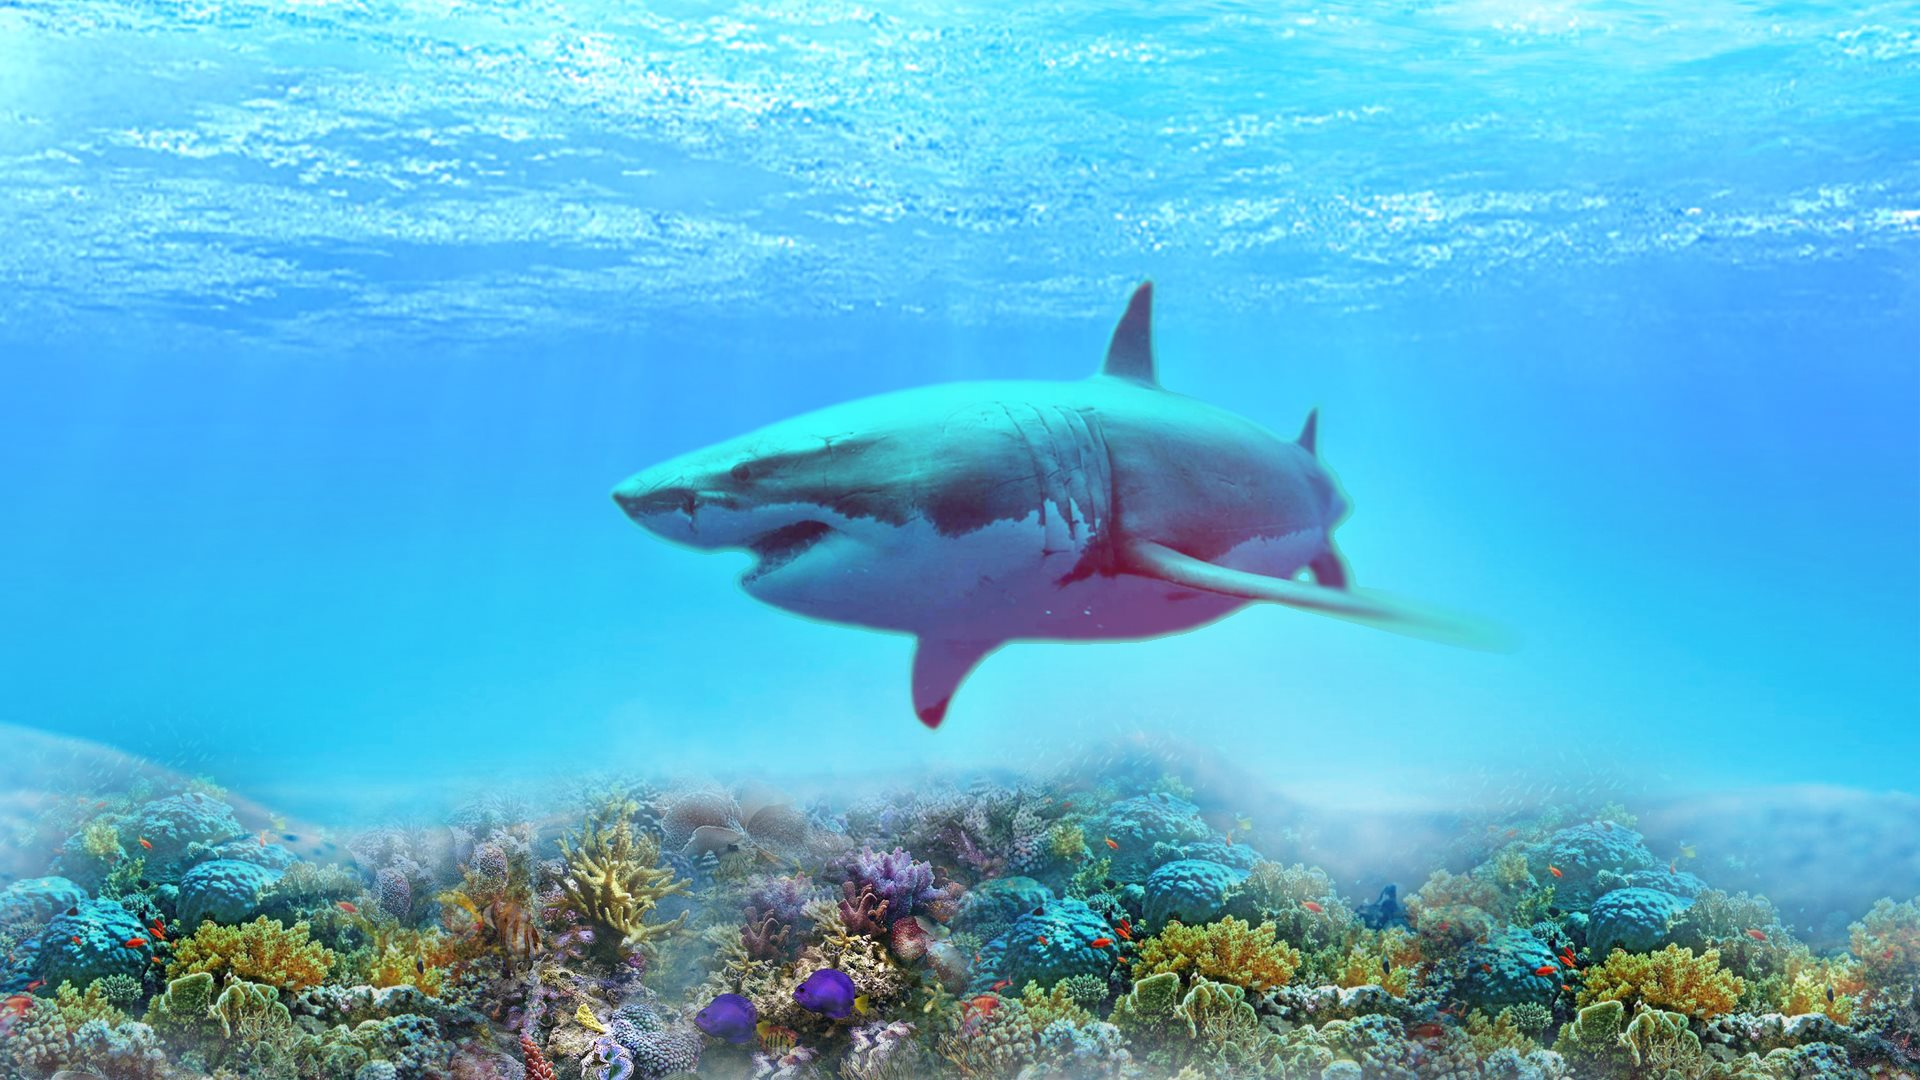 4k shark wallpapers high quality download free